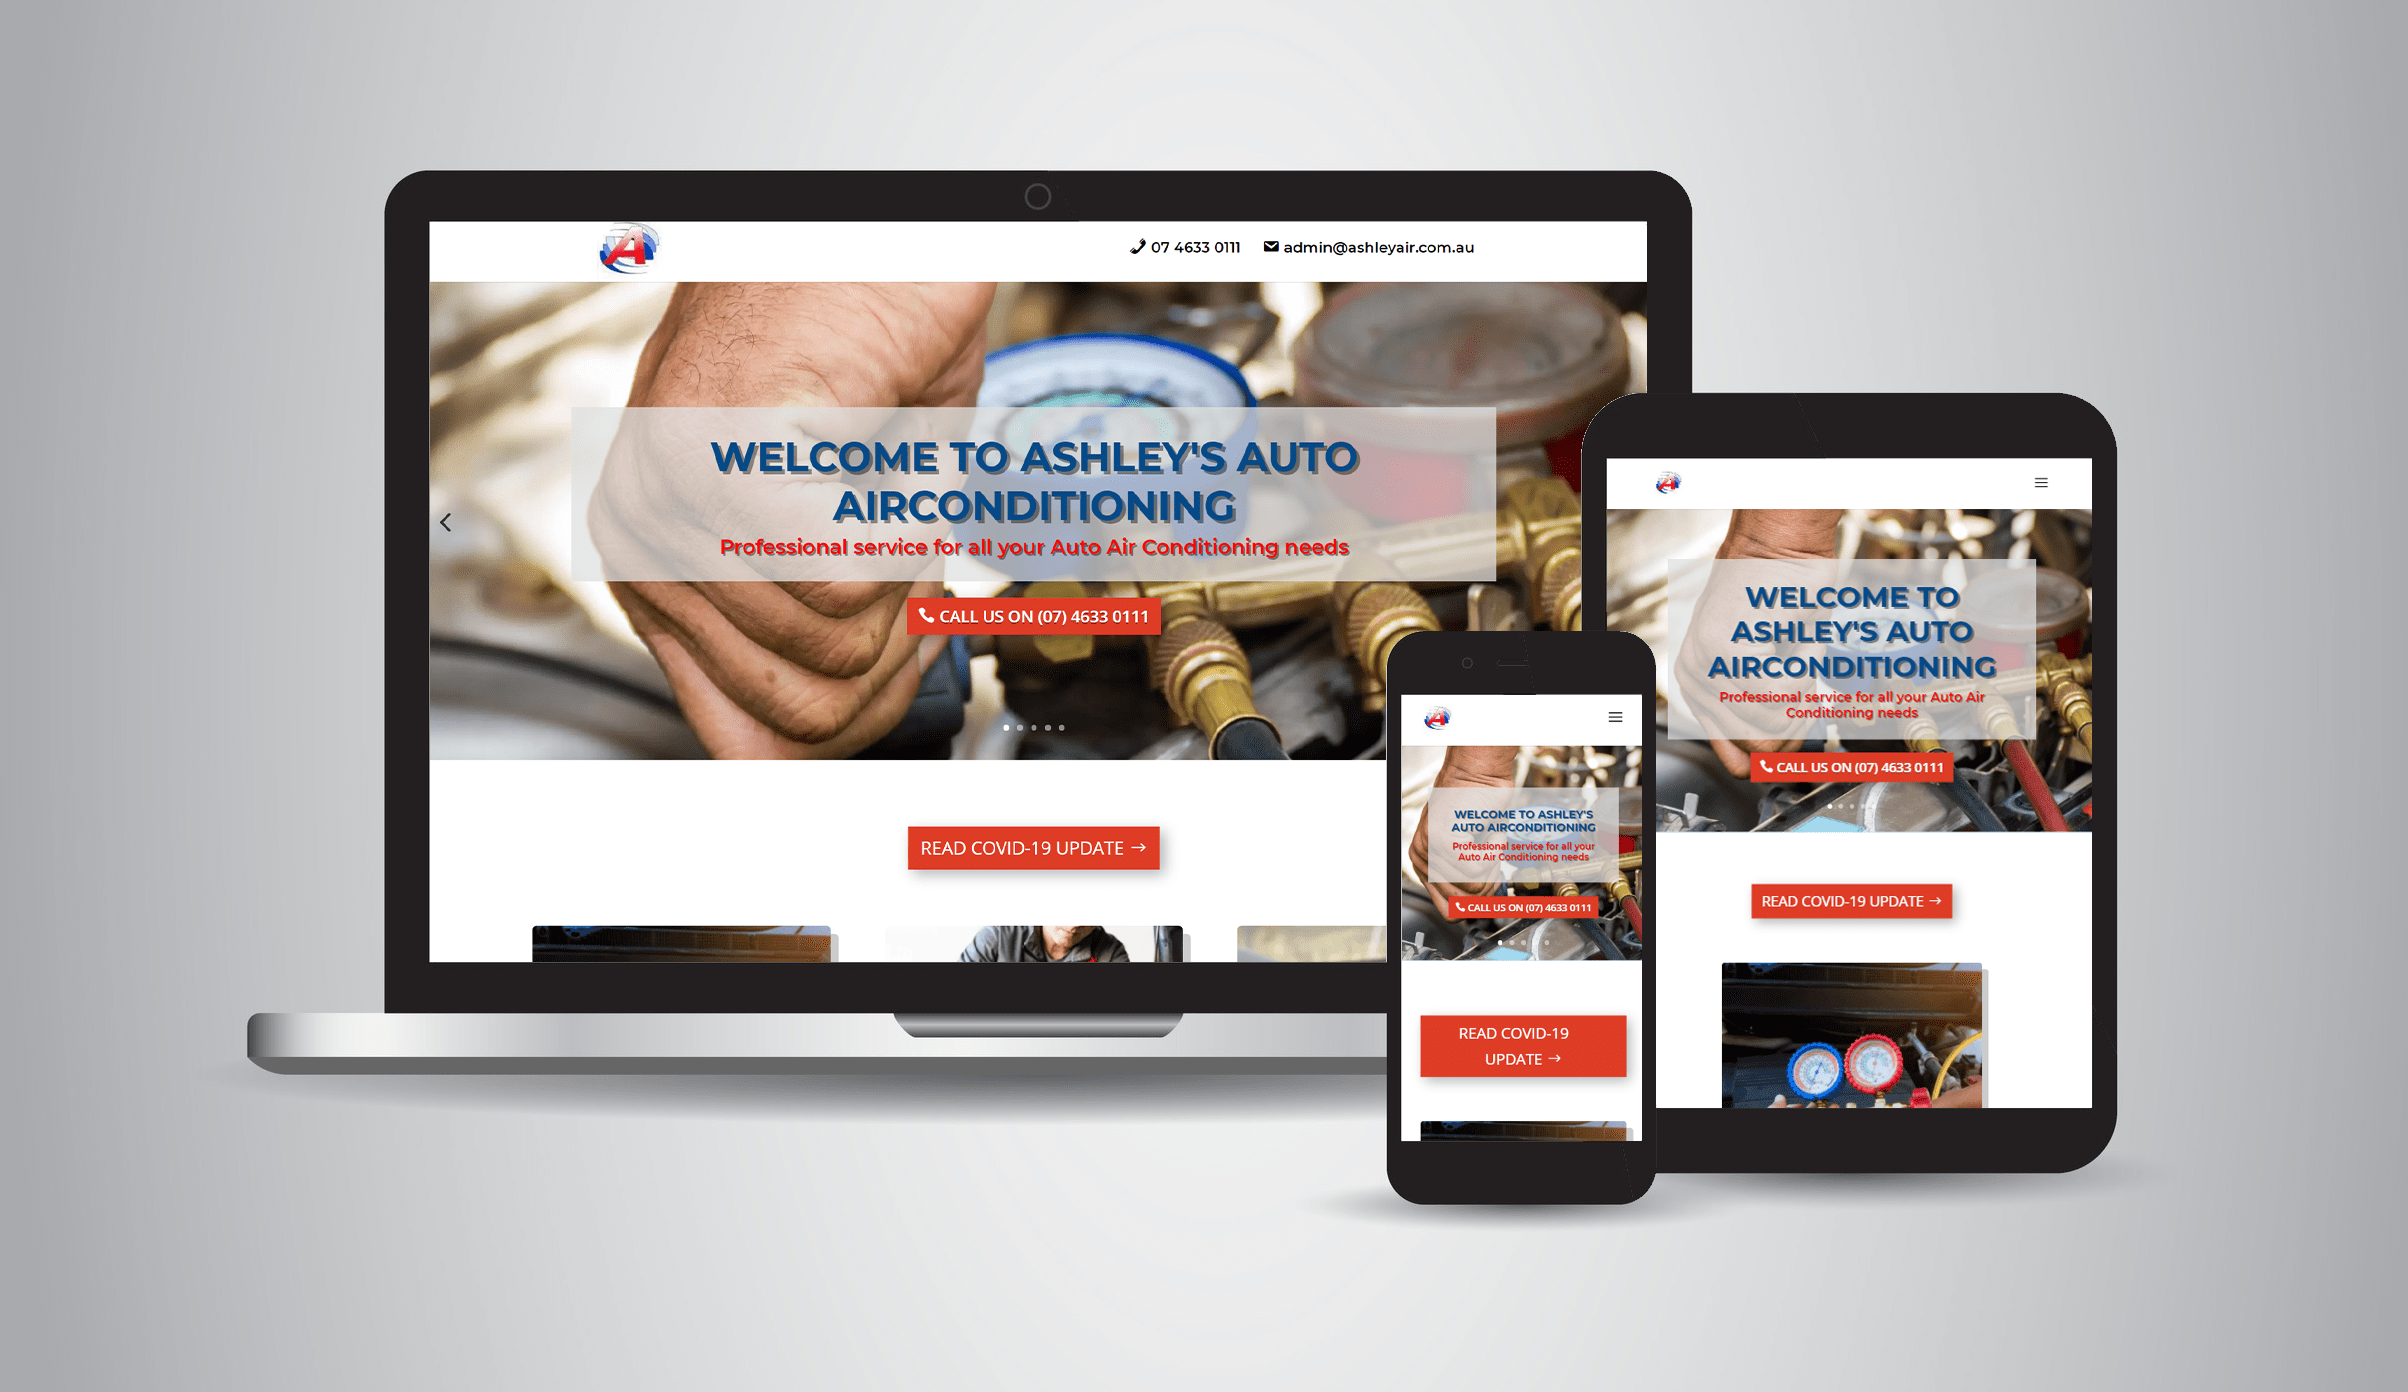 Ashley's Auto Airconditioning - Mechanical, Tyres, Suspension, Truck & 4x4 Accessories